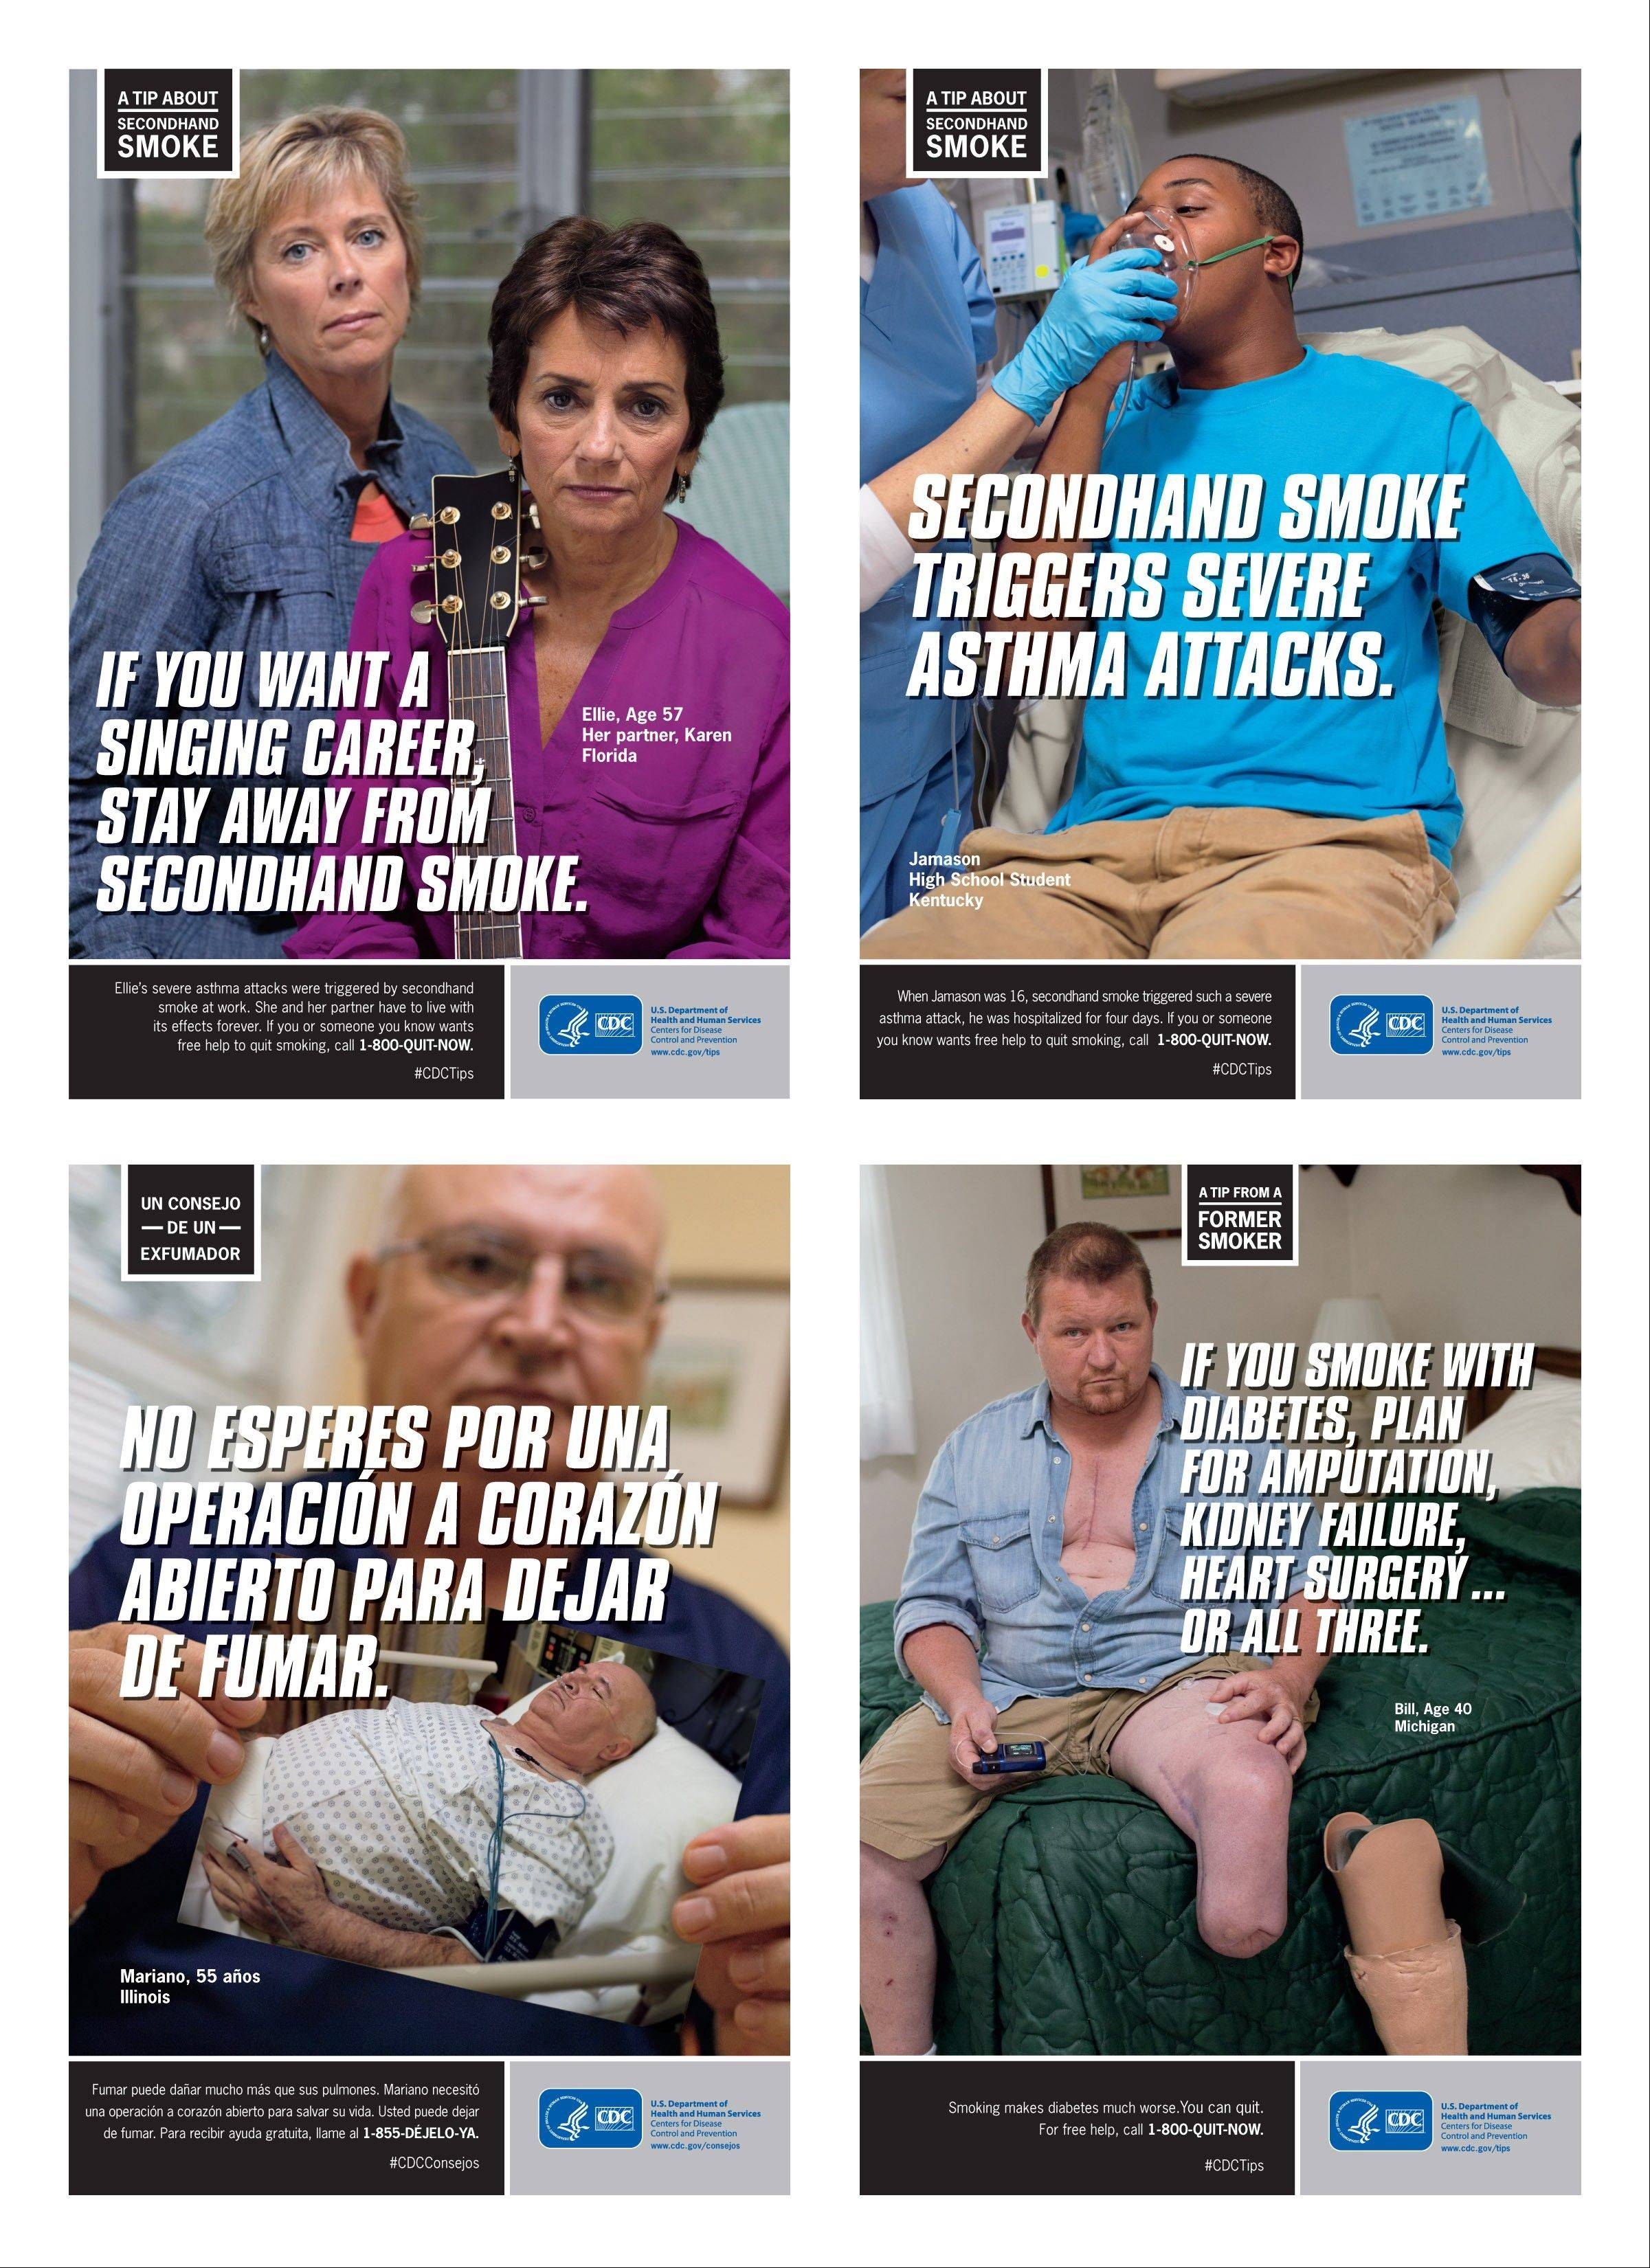 This combination of images provided by the Centers for Disease Control and Prevention shows posters from their anti-smoking advertising campaign, launched Thursday.